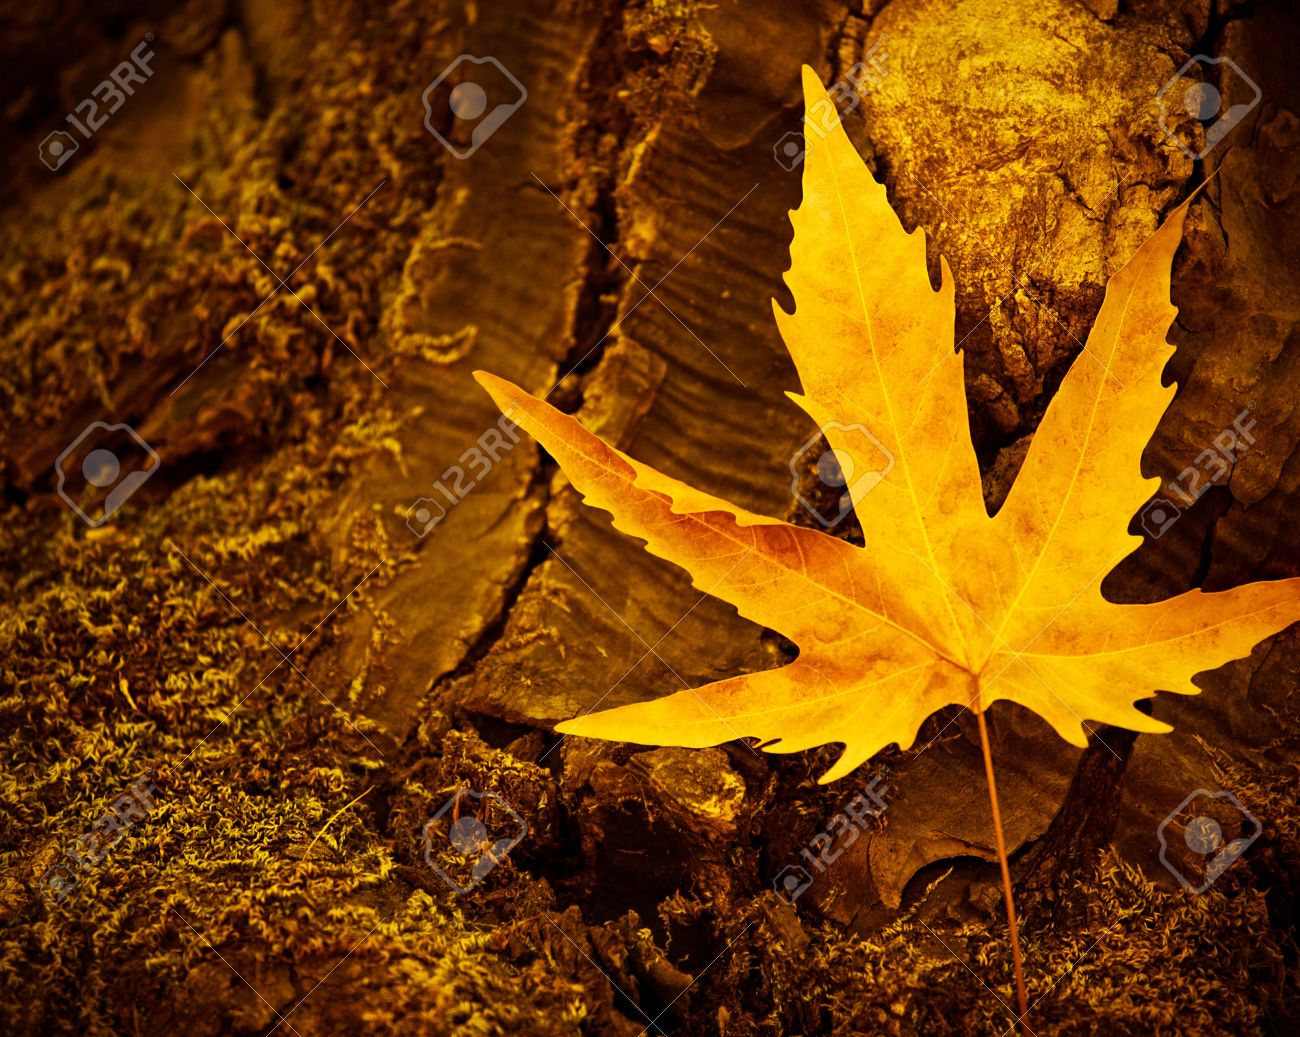 Picture of dry maple leaf on old dark tree trunk, autumn leaves background, yellow autumnal leaves on stump in woods, fall season, autumn nature, old dry plant in forest, nature cycle concept Stock Photo - 15549830